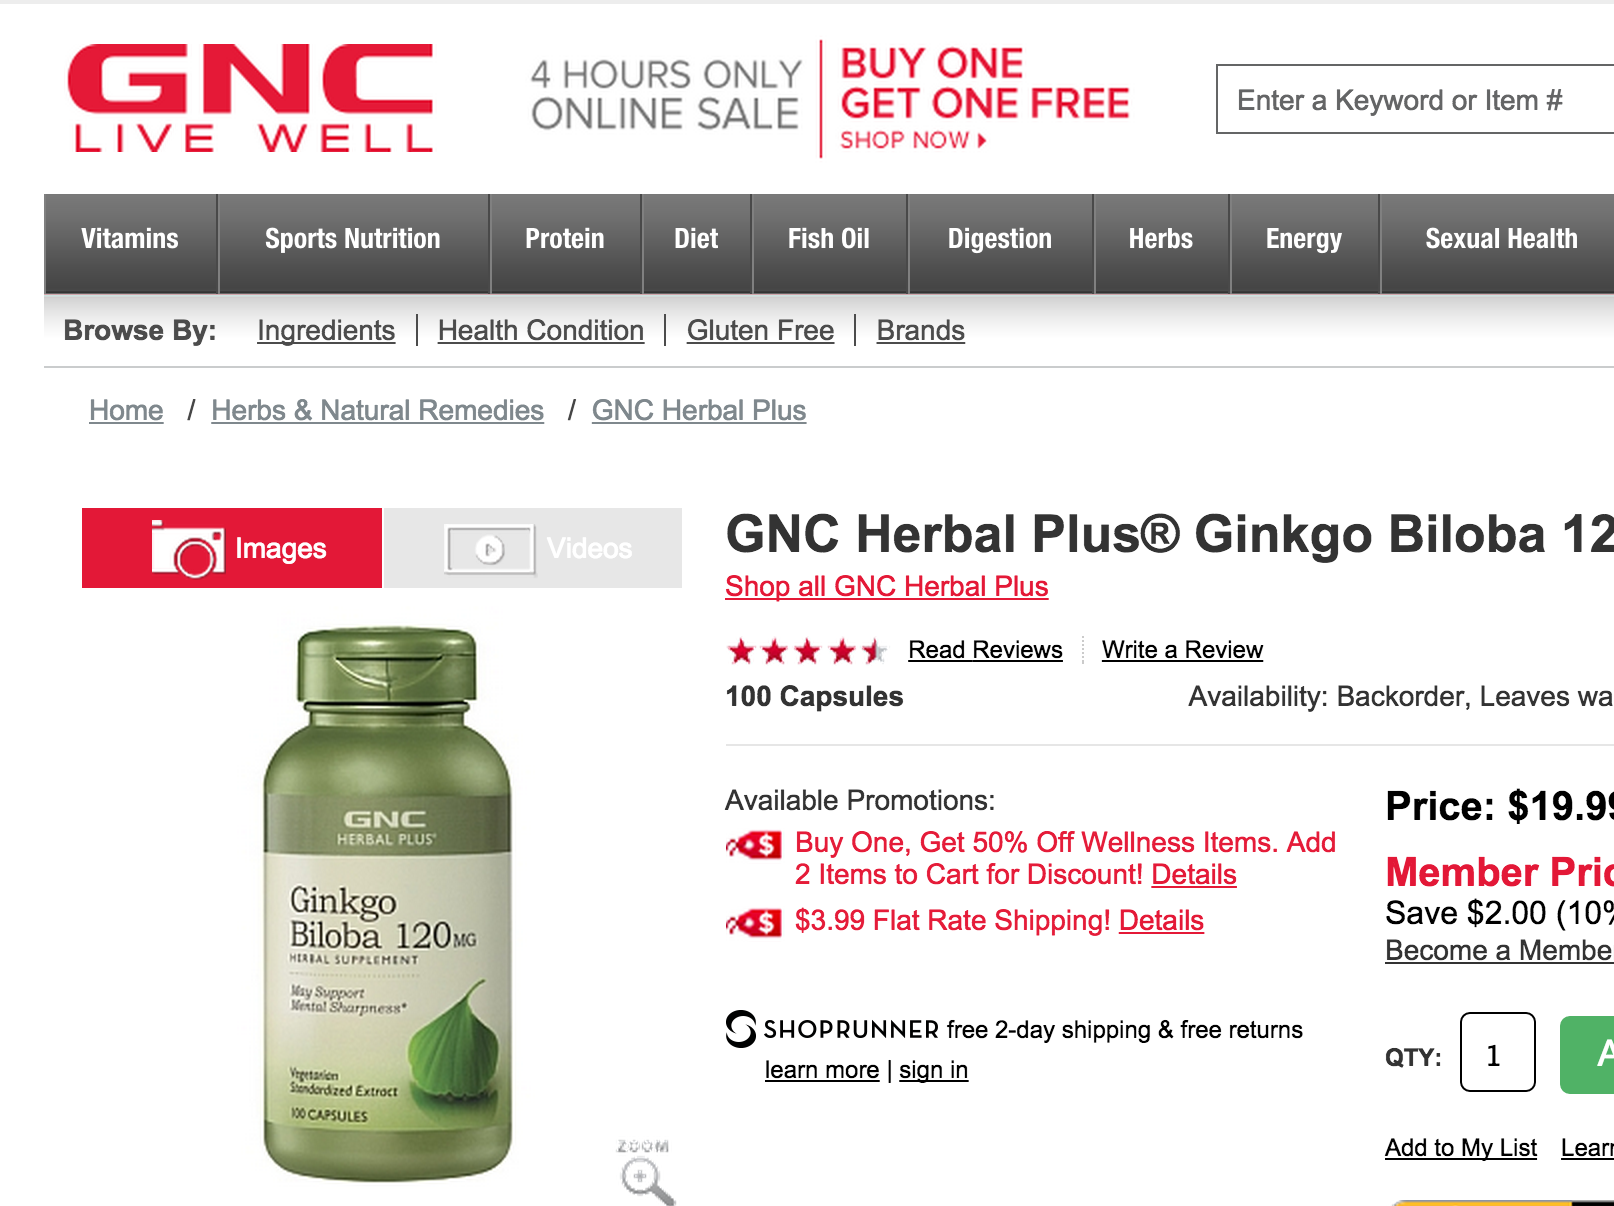 Even though GNC products were ultimately found to abide by federal rules and industry standards, the company has agreed to DNA barcode testing on its ingredients, along with requiring its suppliers to test for common allergens.